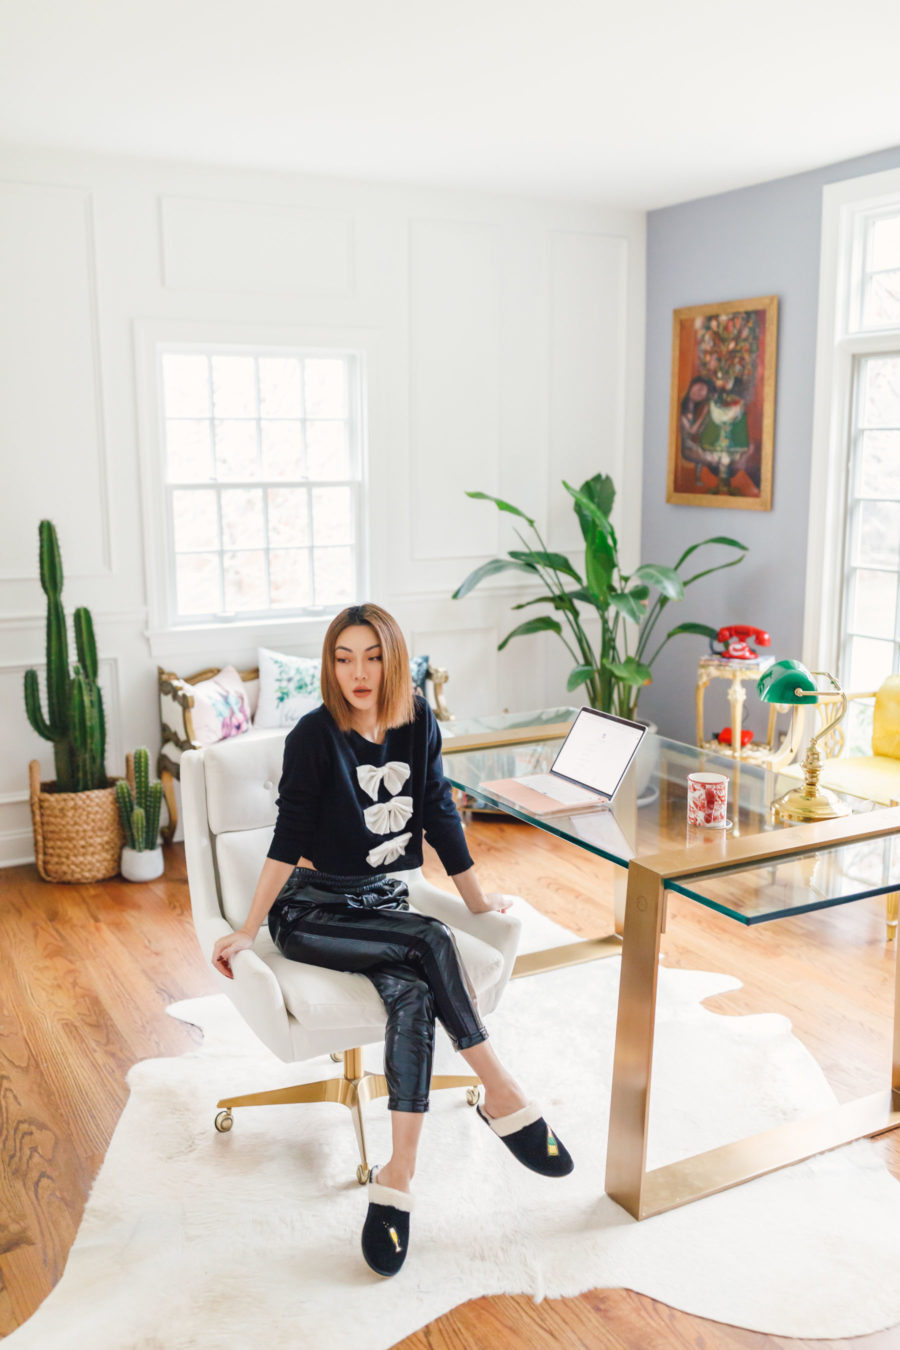 fashion blogger jessica wang at her home office sharing ways to stay productive // Jessica Wang - Notjessfashion.com